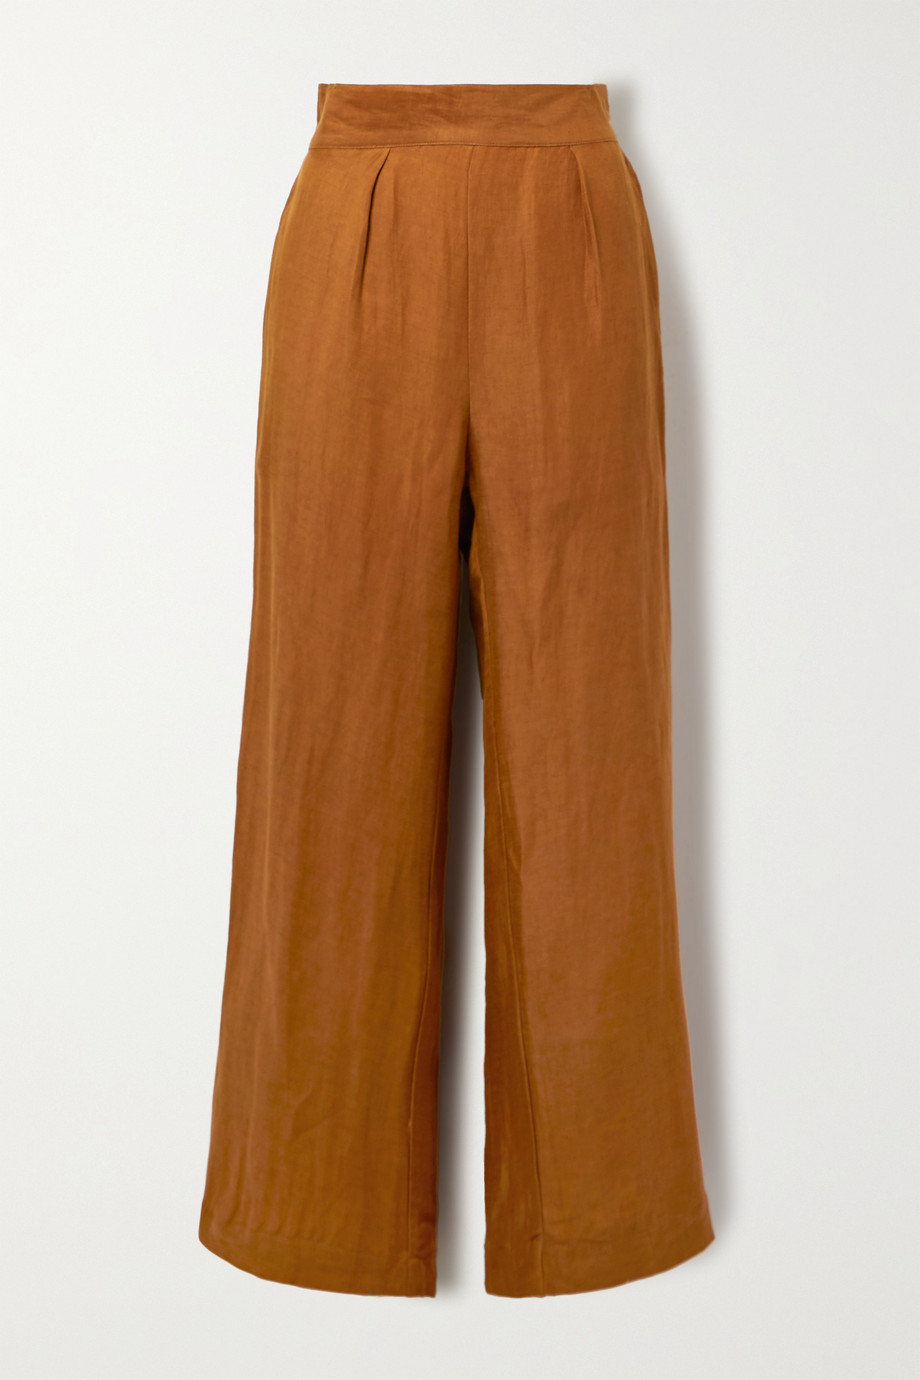 Anemos + NET SUSTAIN The Keaton linen and cupro-blend wide-leg pants